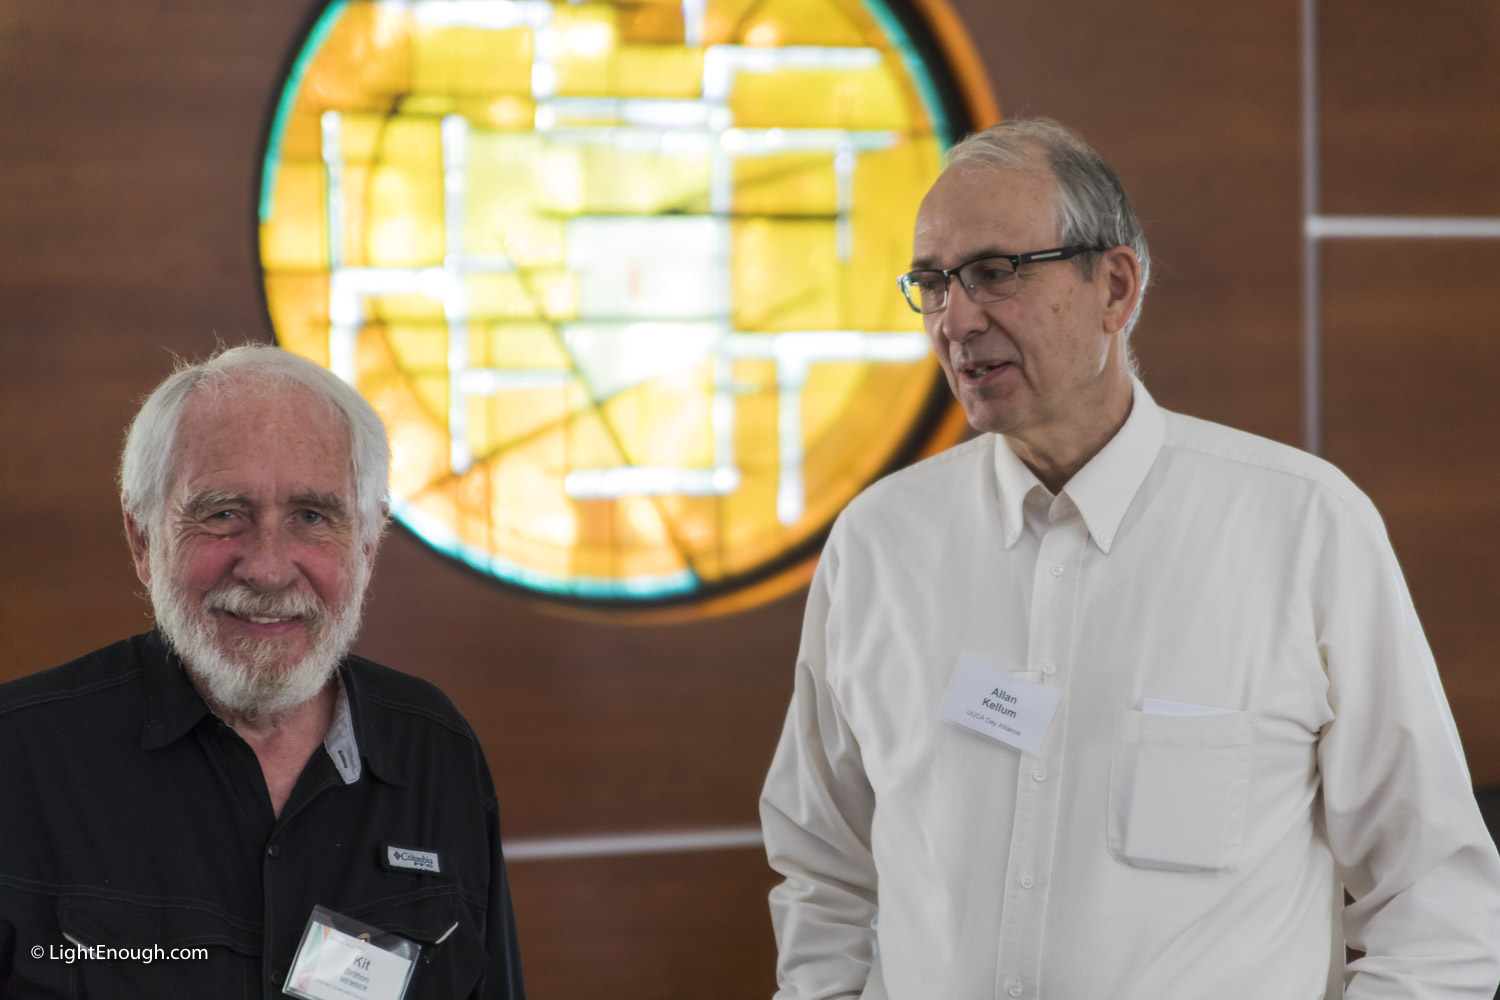 Kit Britton and Allan Kellum at the June 2017 meeting of the UUCA Day Alliance. Allen Keiswetter speaker. Photos by John St Hilaire / LightEnough.com